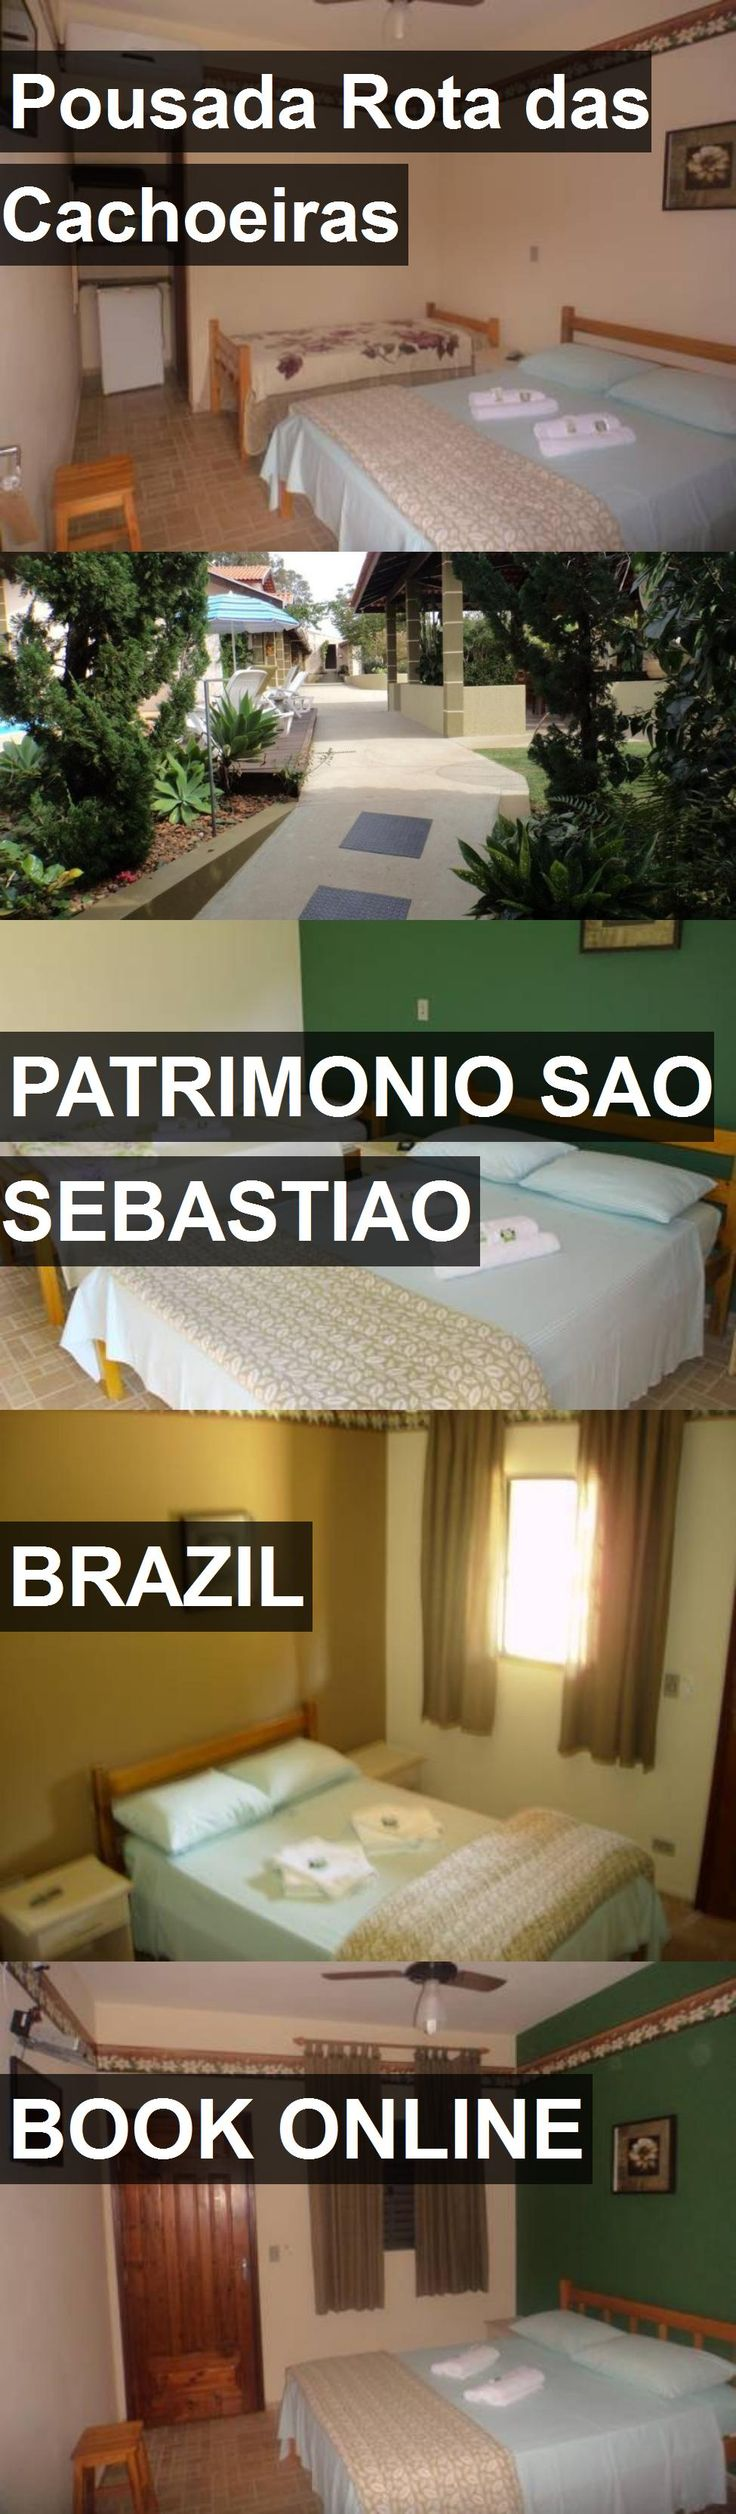 Hotel Pousada Rota das Cachoeiras in Patrimonio Sao Sebastiao, Brazil. For more information, photos, reviews and best prices please follow the link. #Brazil #PatrimonioSaoSebastiao #travel #vacation #hotel